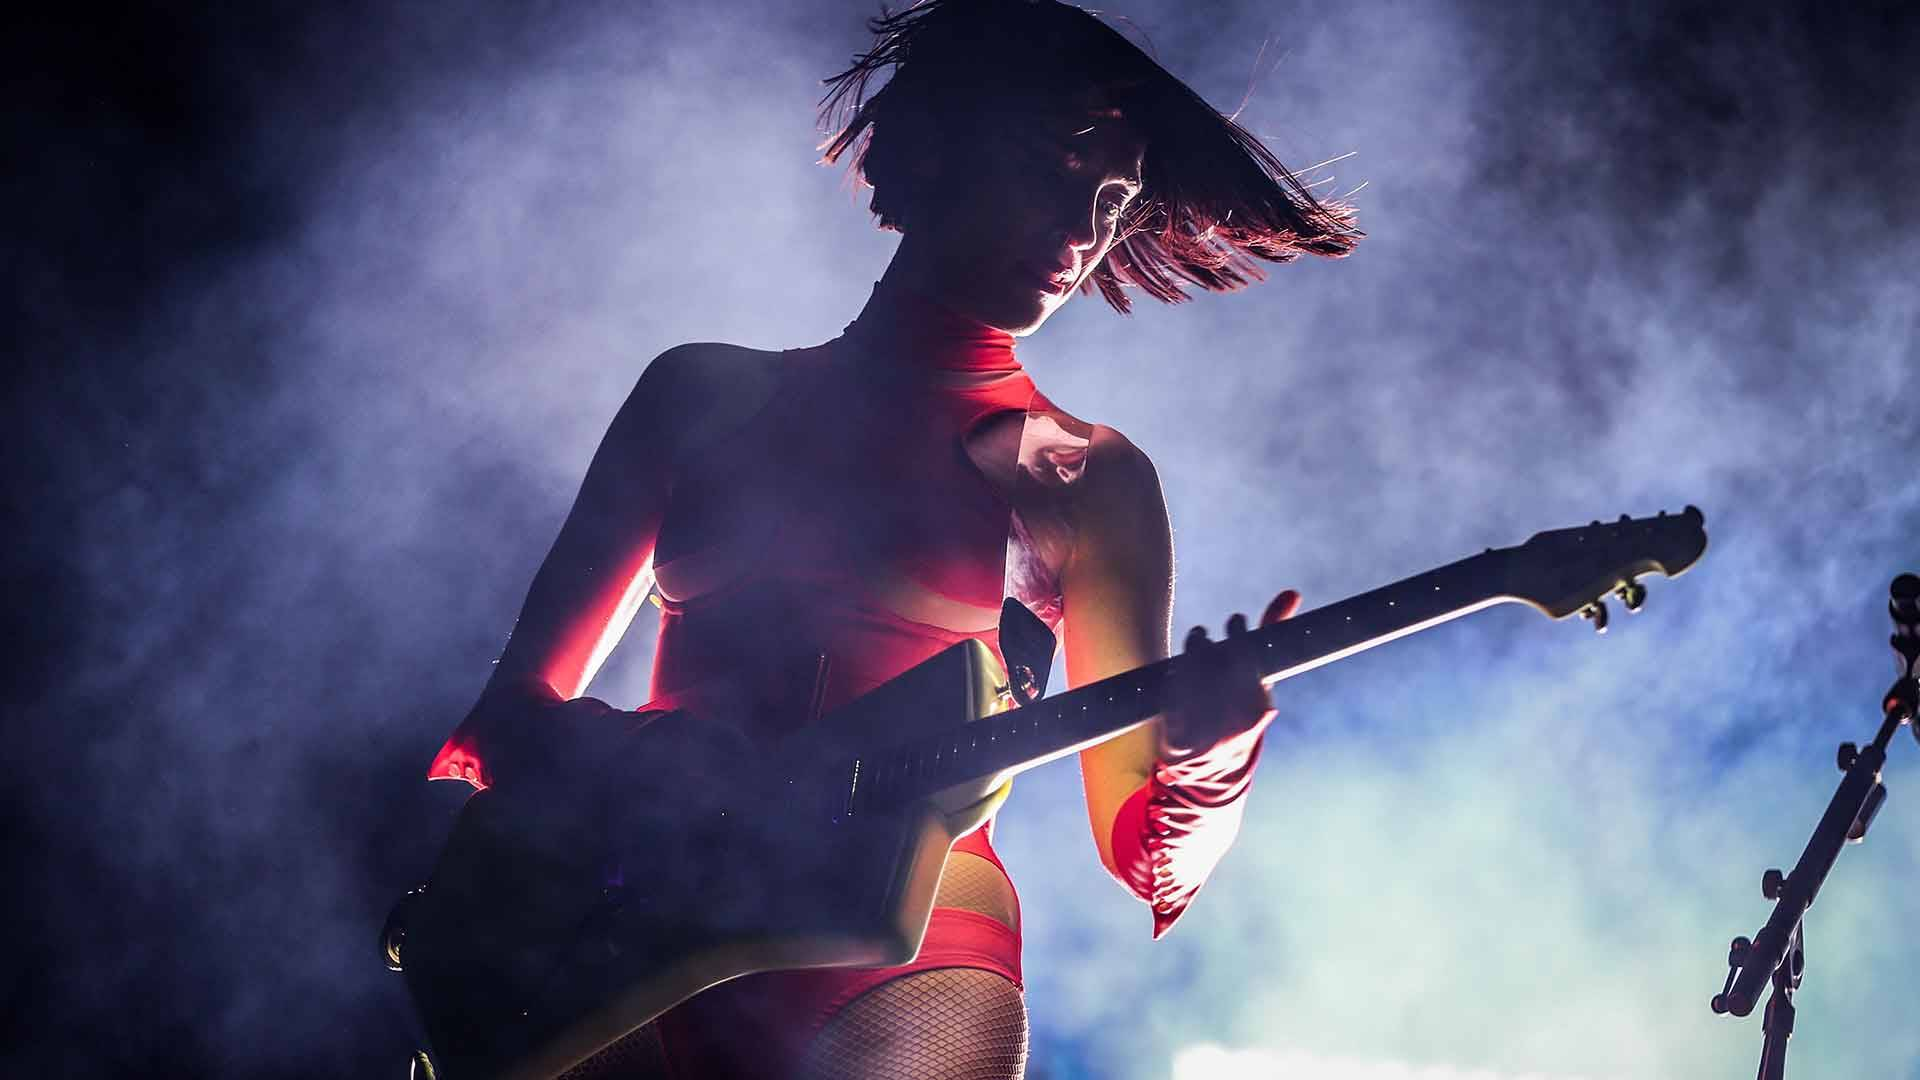 St. Vincent performs onstage at Coachella on April 20, 2018. Rich Fury/Getty Images for Coachella